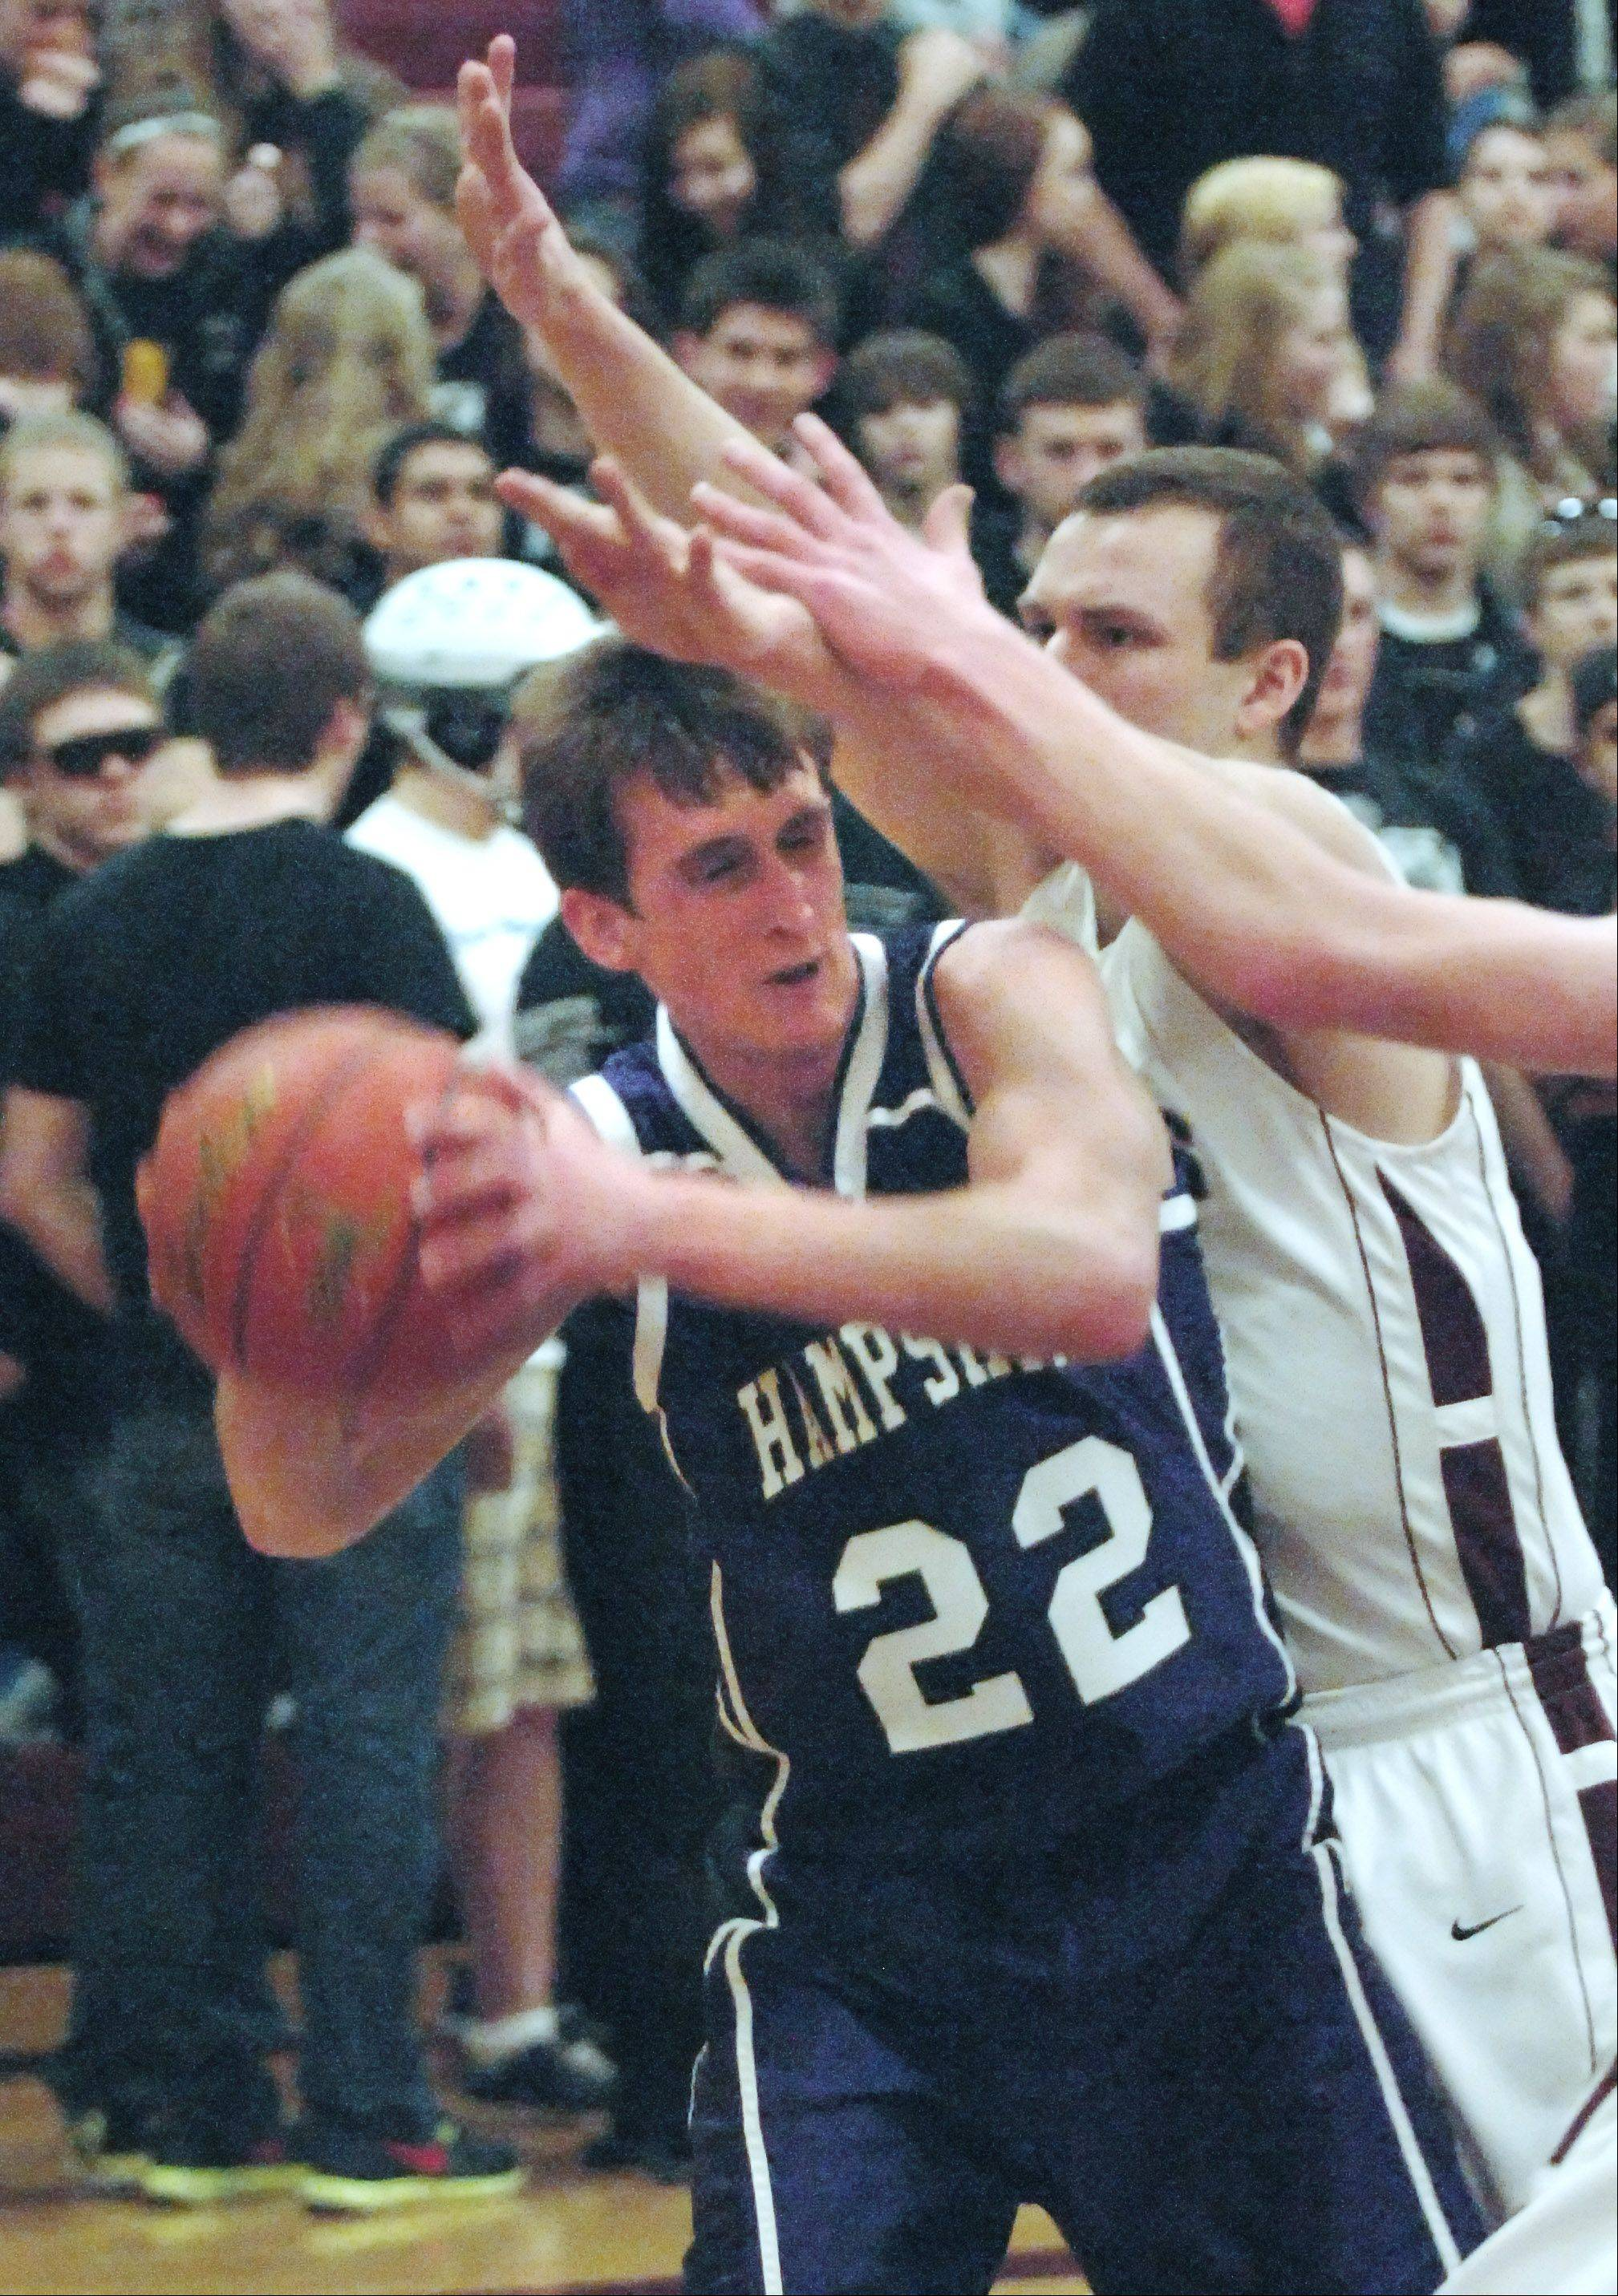 Hampshire's Brendan Waterworth is forced to look for a teammate under the basket as Marengo's Anthony Mallegni guards him Tuesday in Marengo.